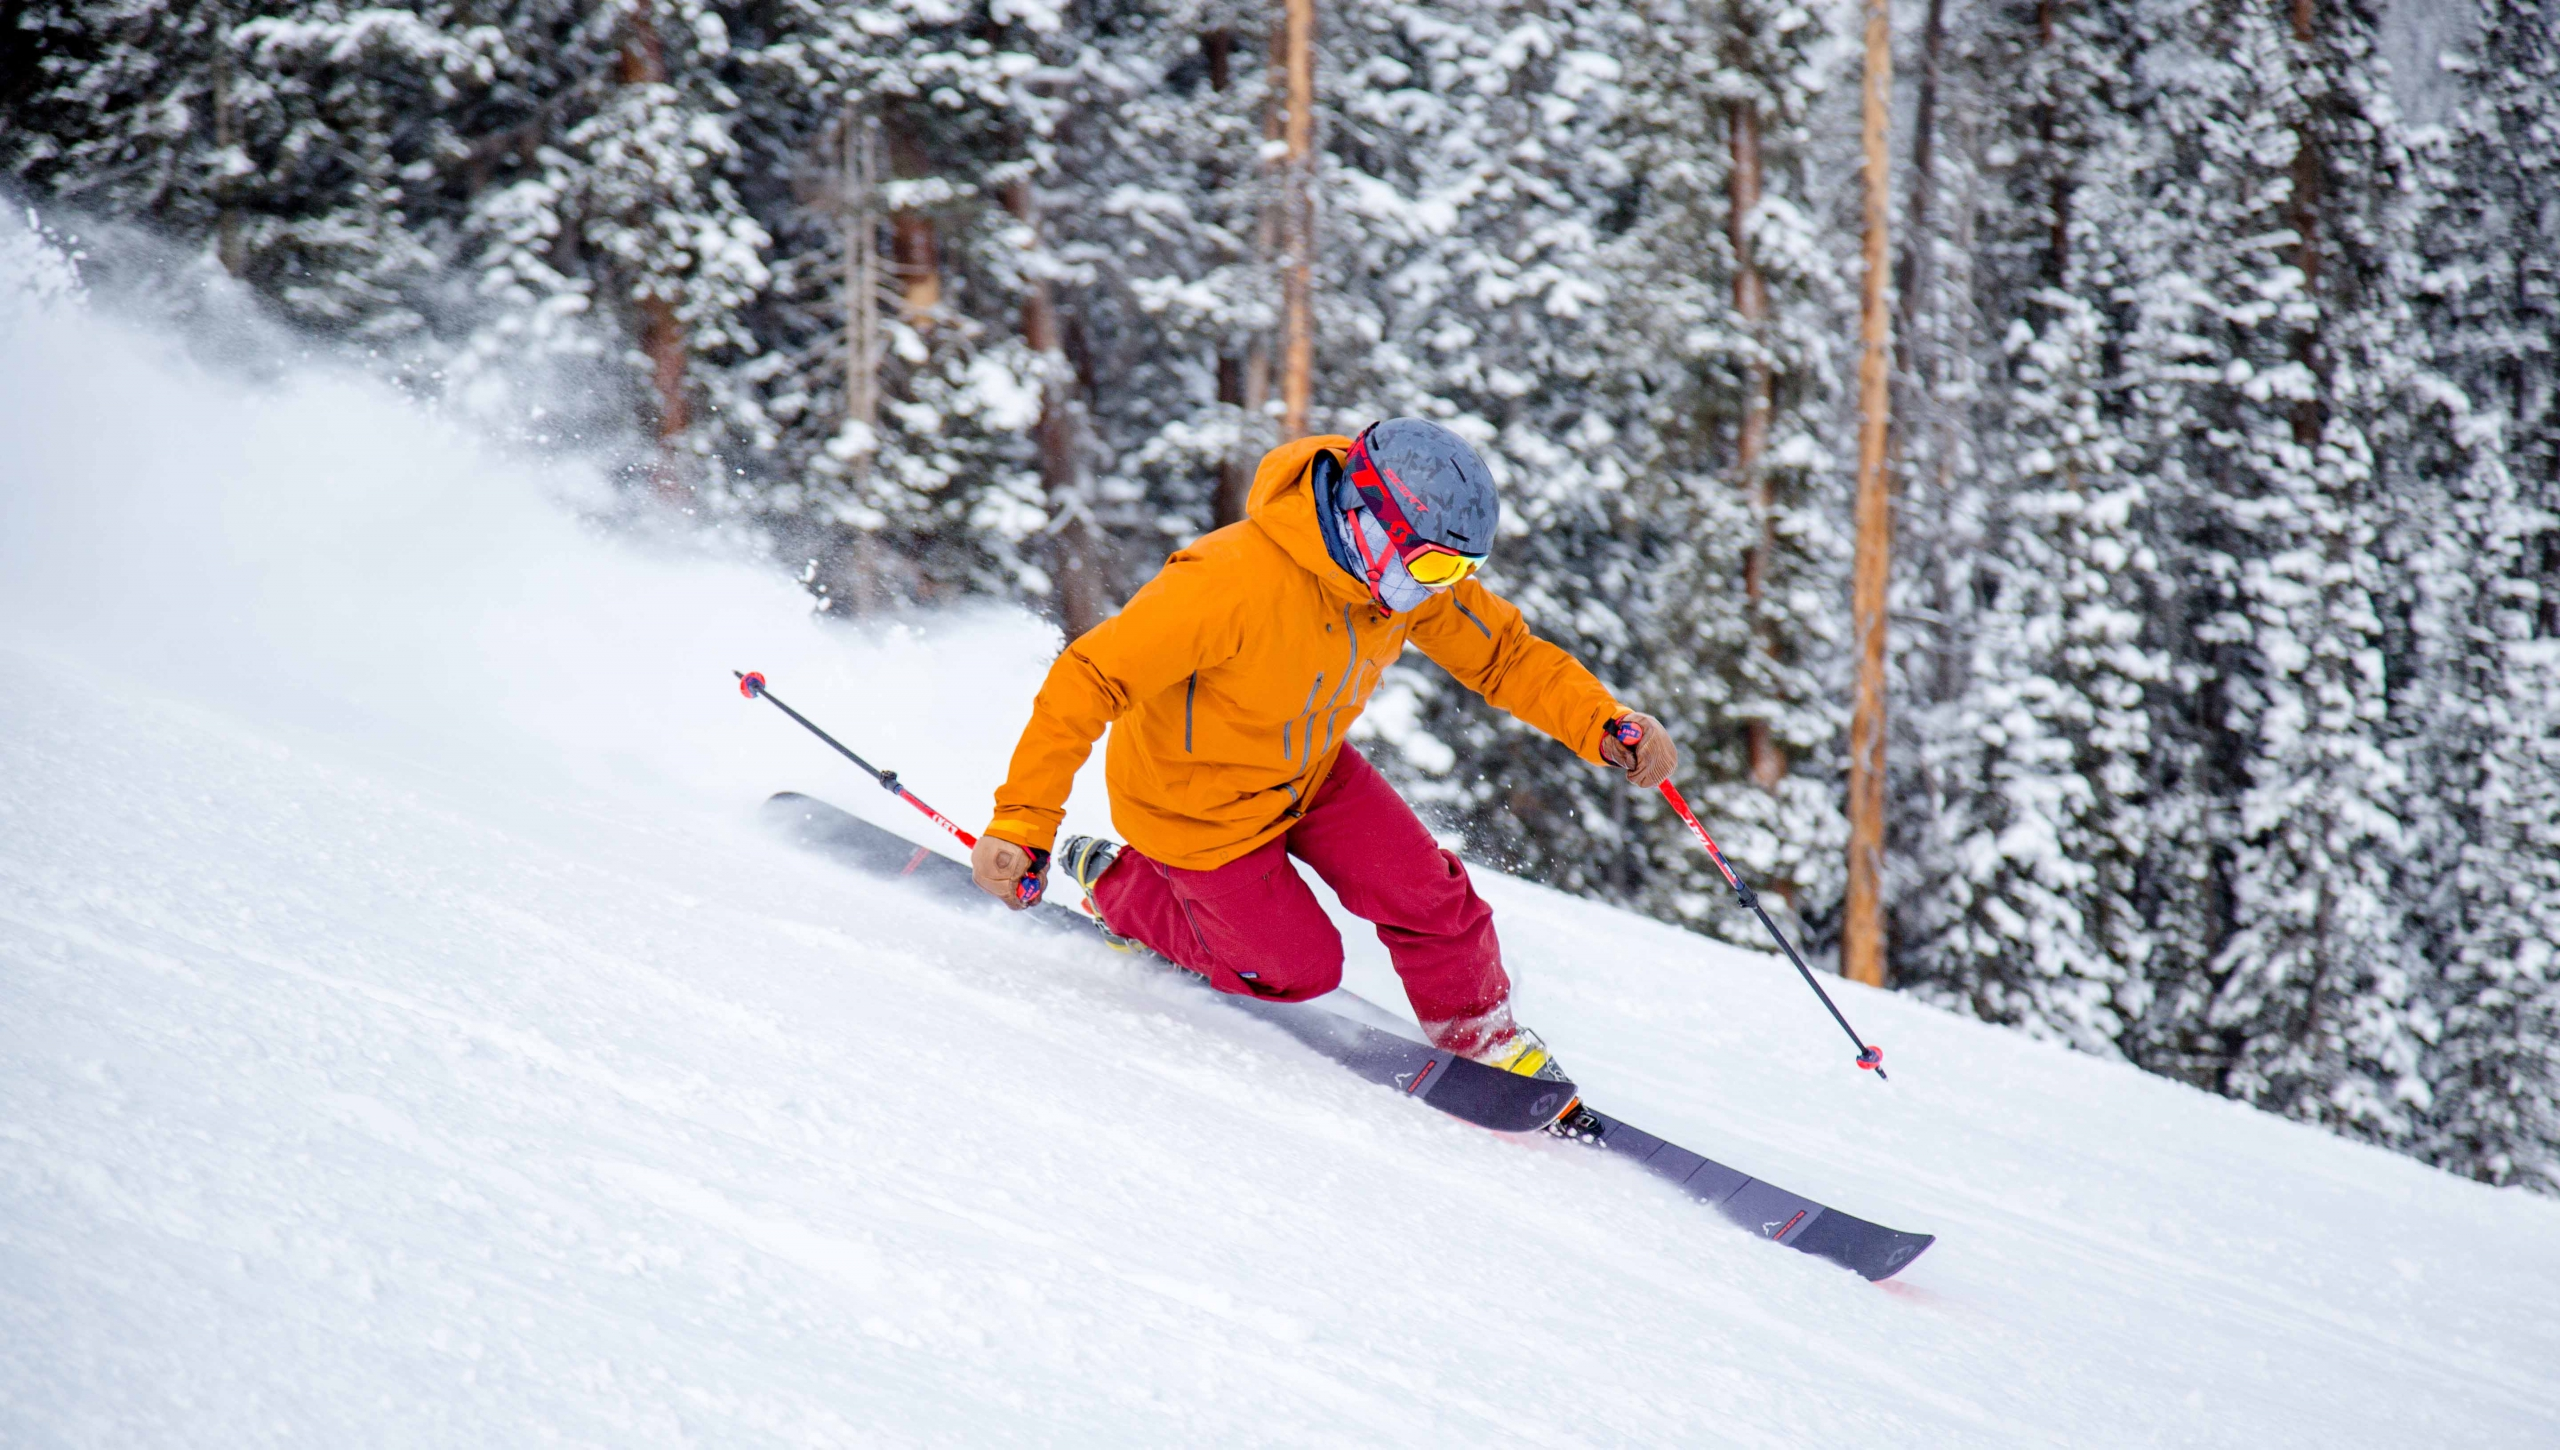 PSIA-AASI National Team member Greg Dixon telemark skis at A-Basin